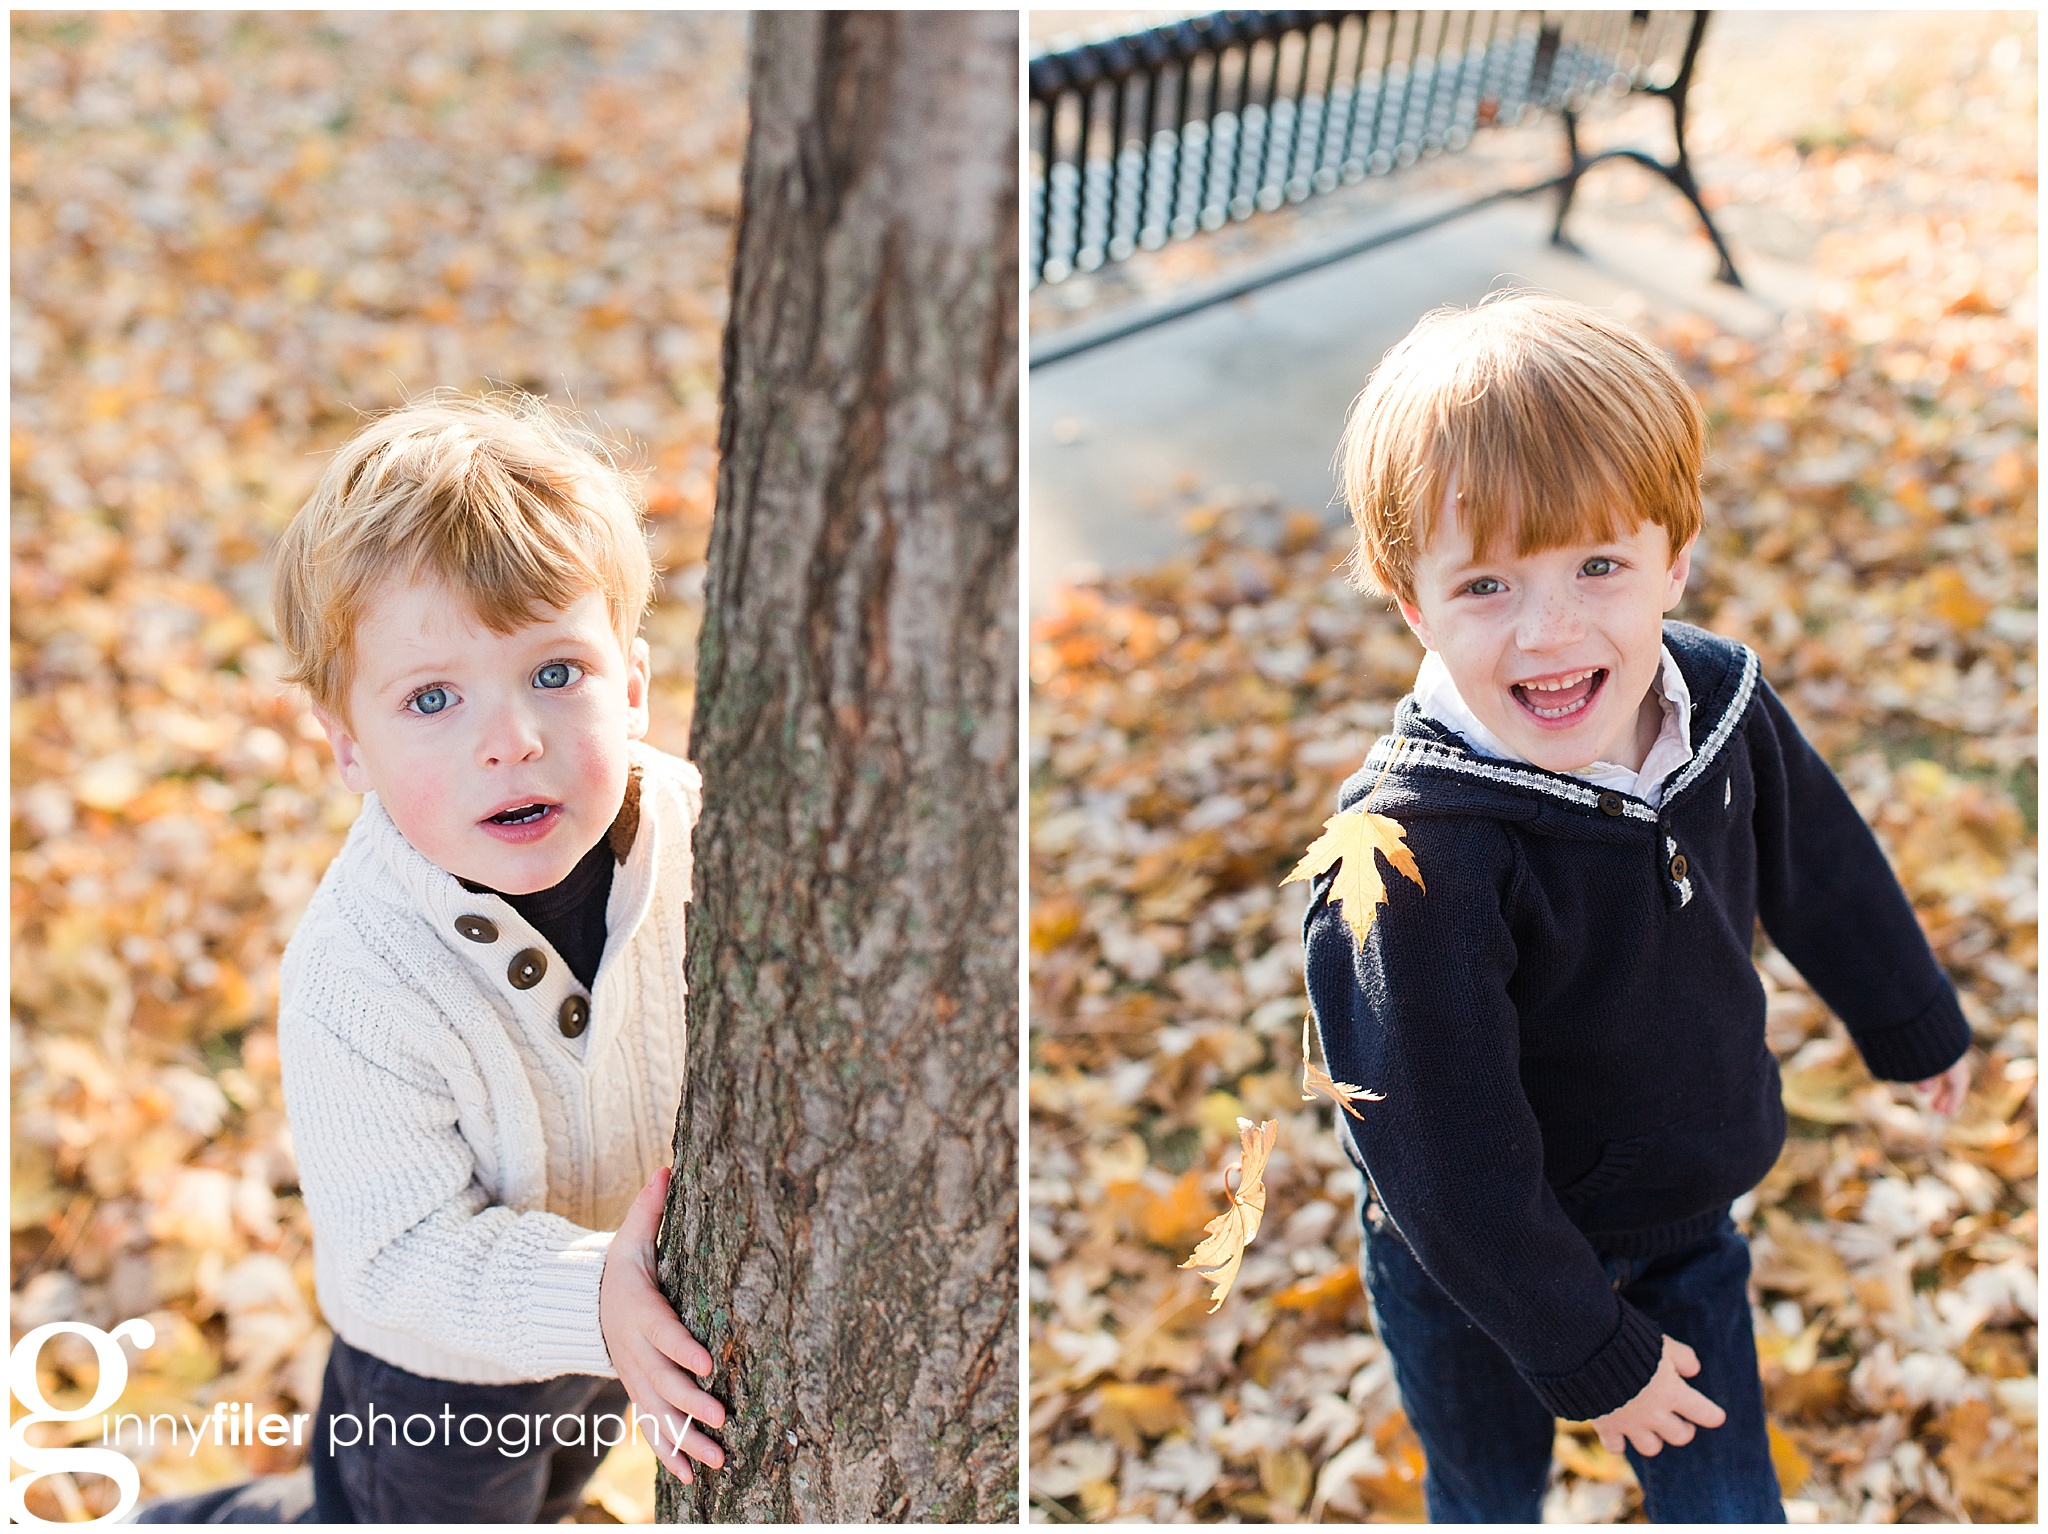 family_photography_riedy_0014.jpg